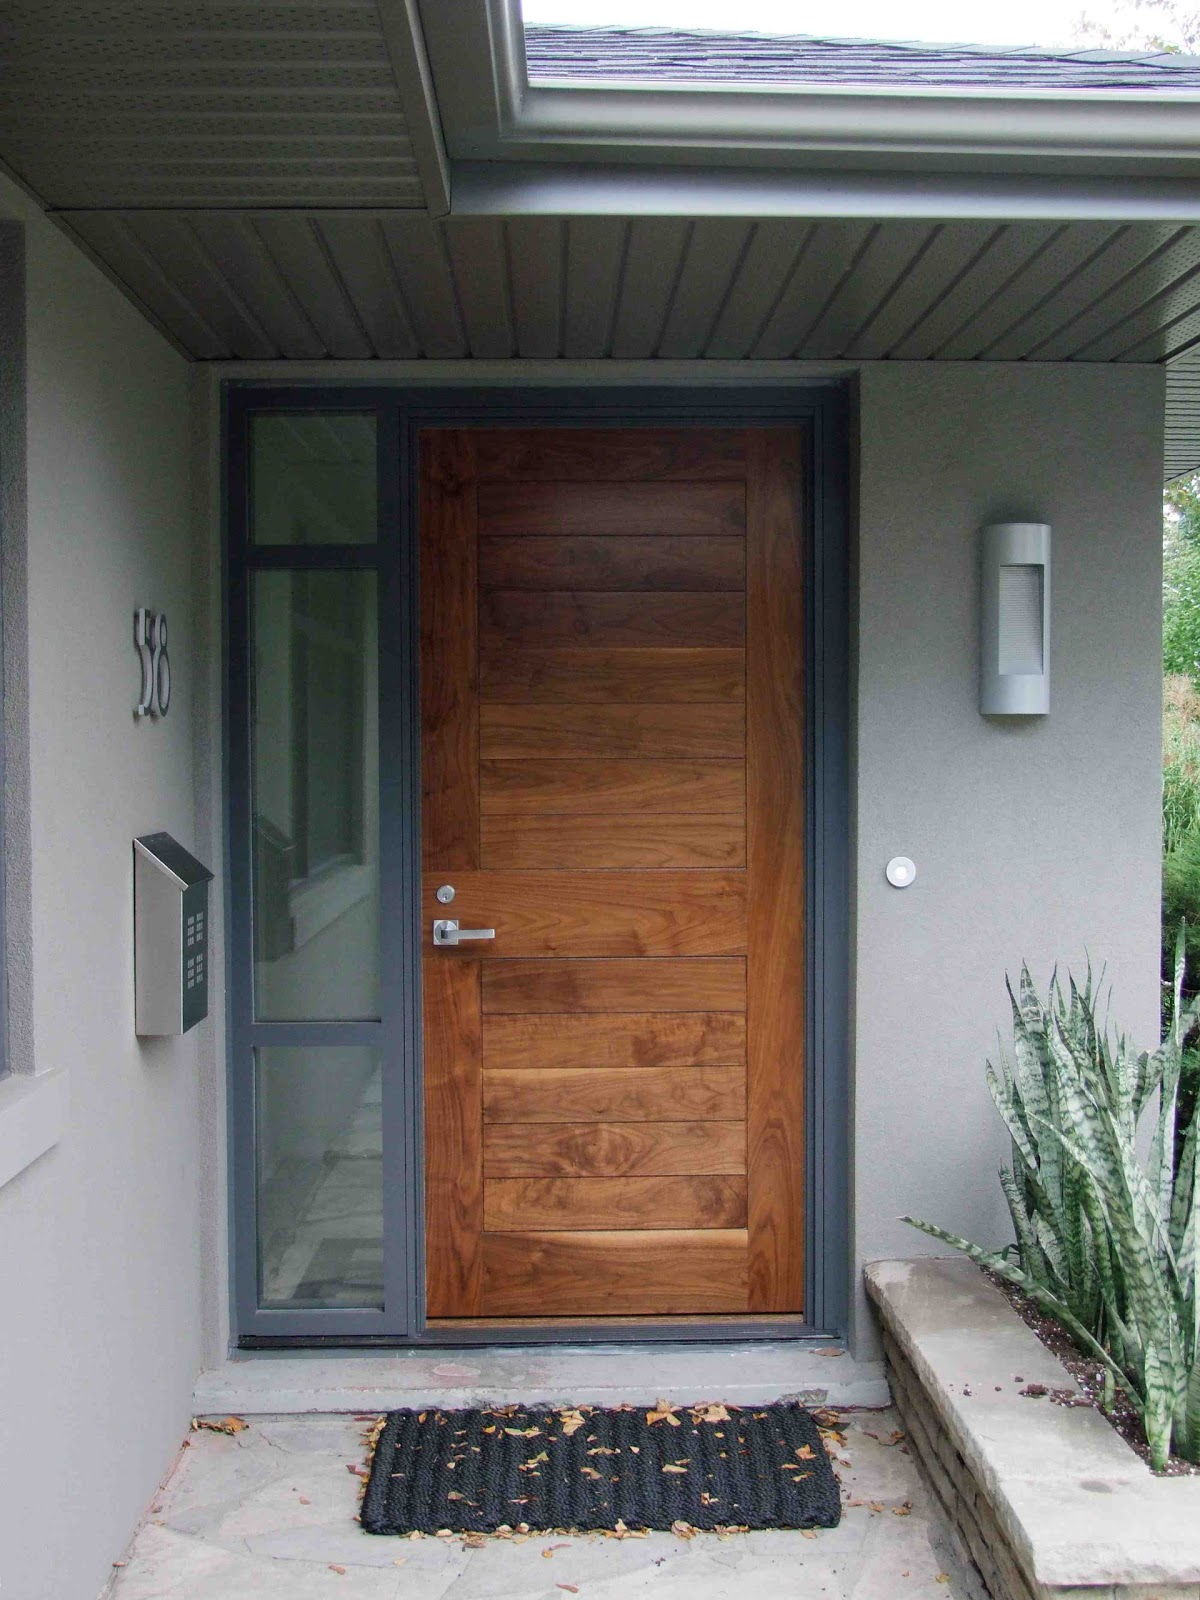 Creed 70 39 s bungalow makes a modern impression for Exterior door designs for home